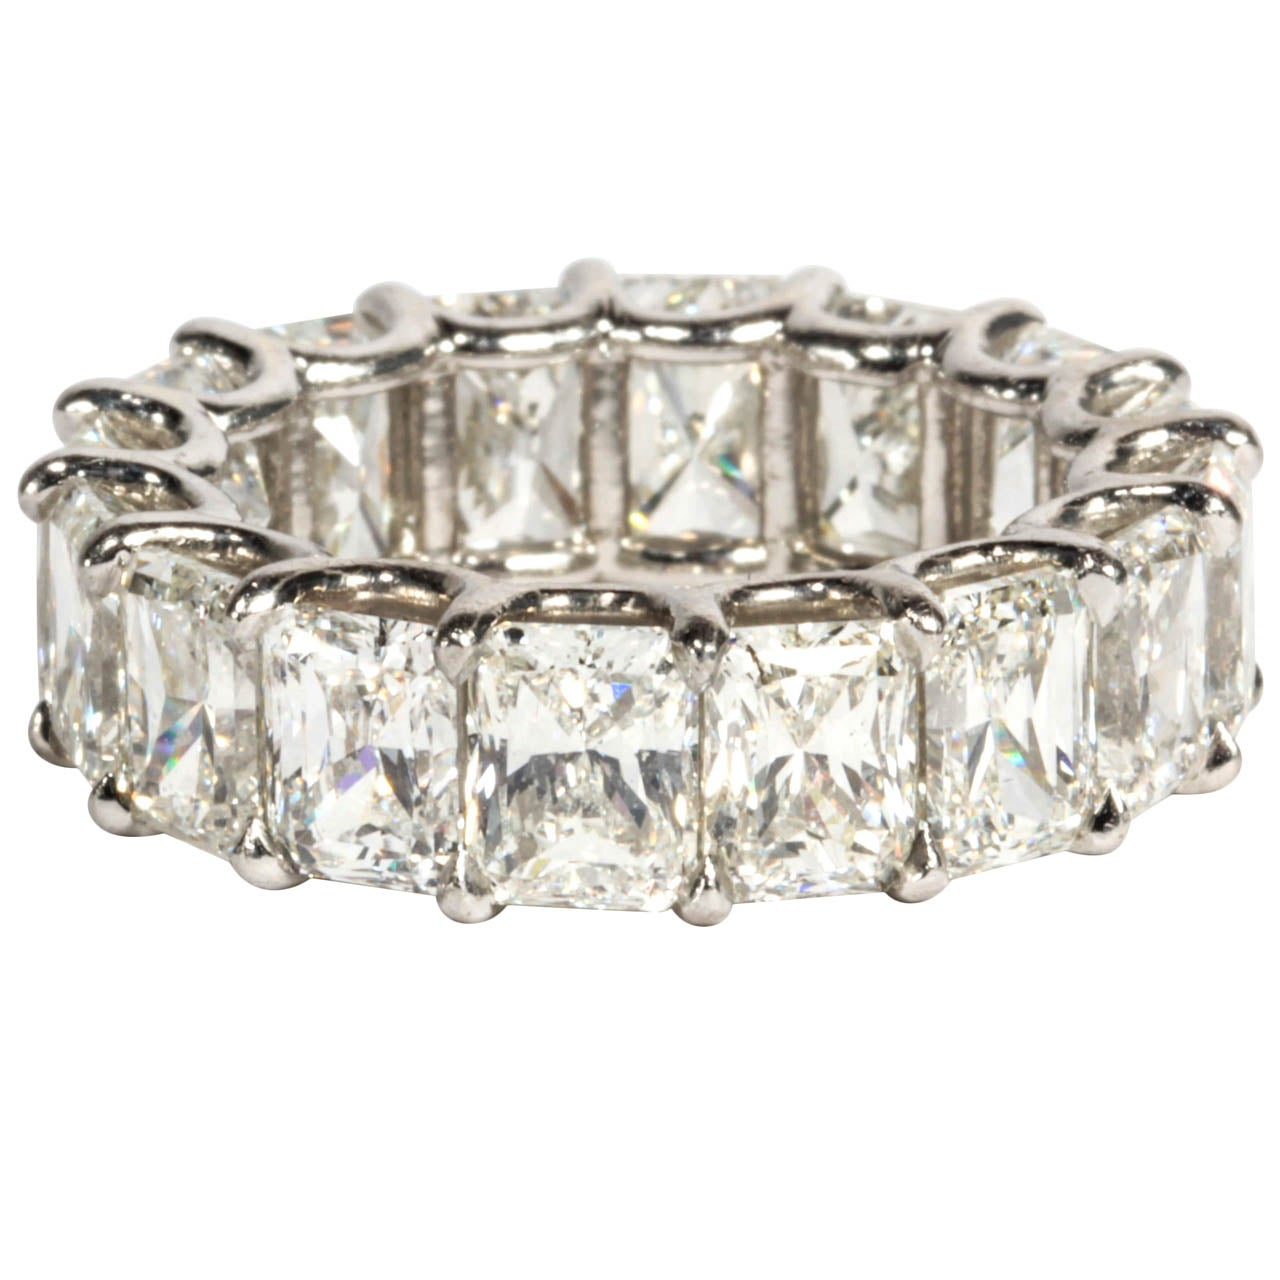 Gorgeous Radiant Cut Diamond Eternity Band